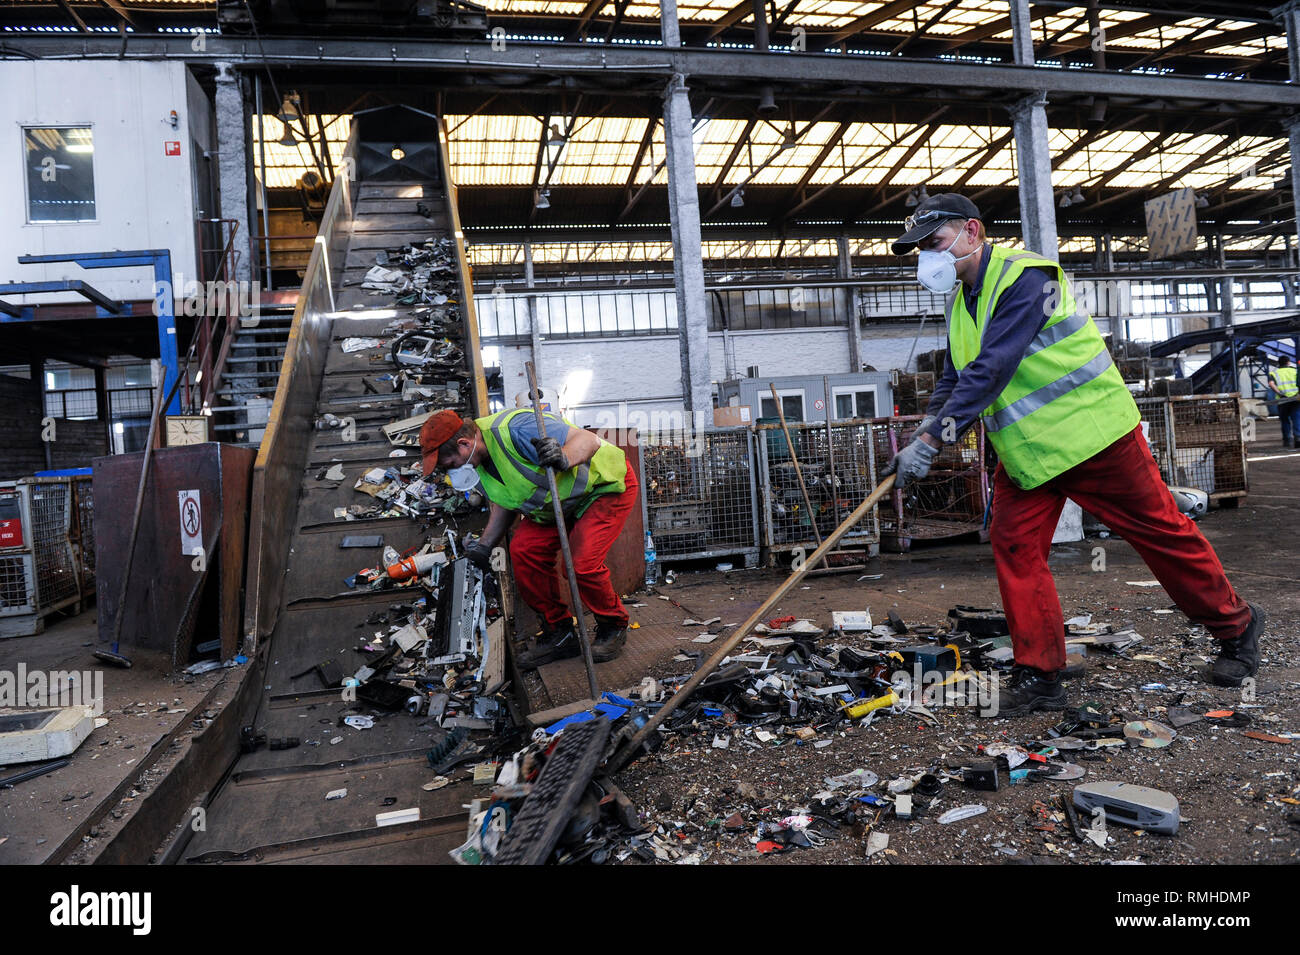 GERMANY, Hamburg, recycling of electronical scrap and old consumer goods at company TCMG, the trash is collected by the urban waste disposal system and than processed and separated here after metals like copper and plastics for further recycling and reuse, by law is not allowed to export e-scrap to africa and other countries - Stock Image